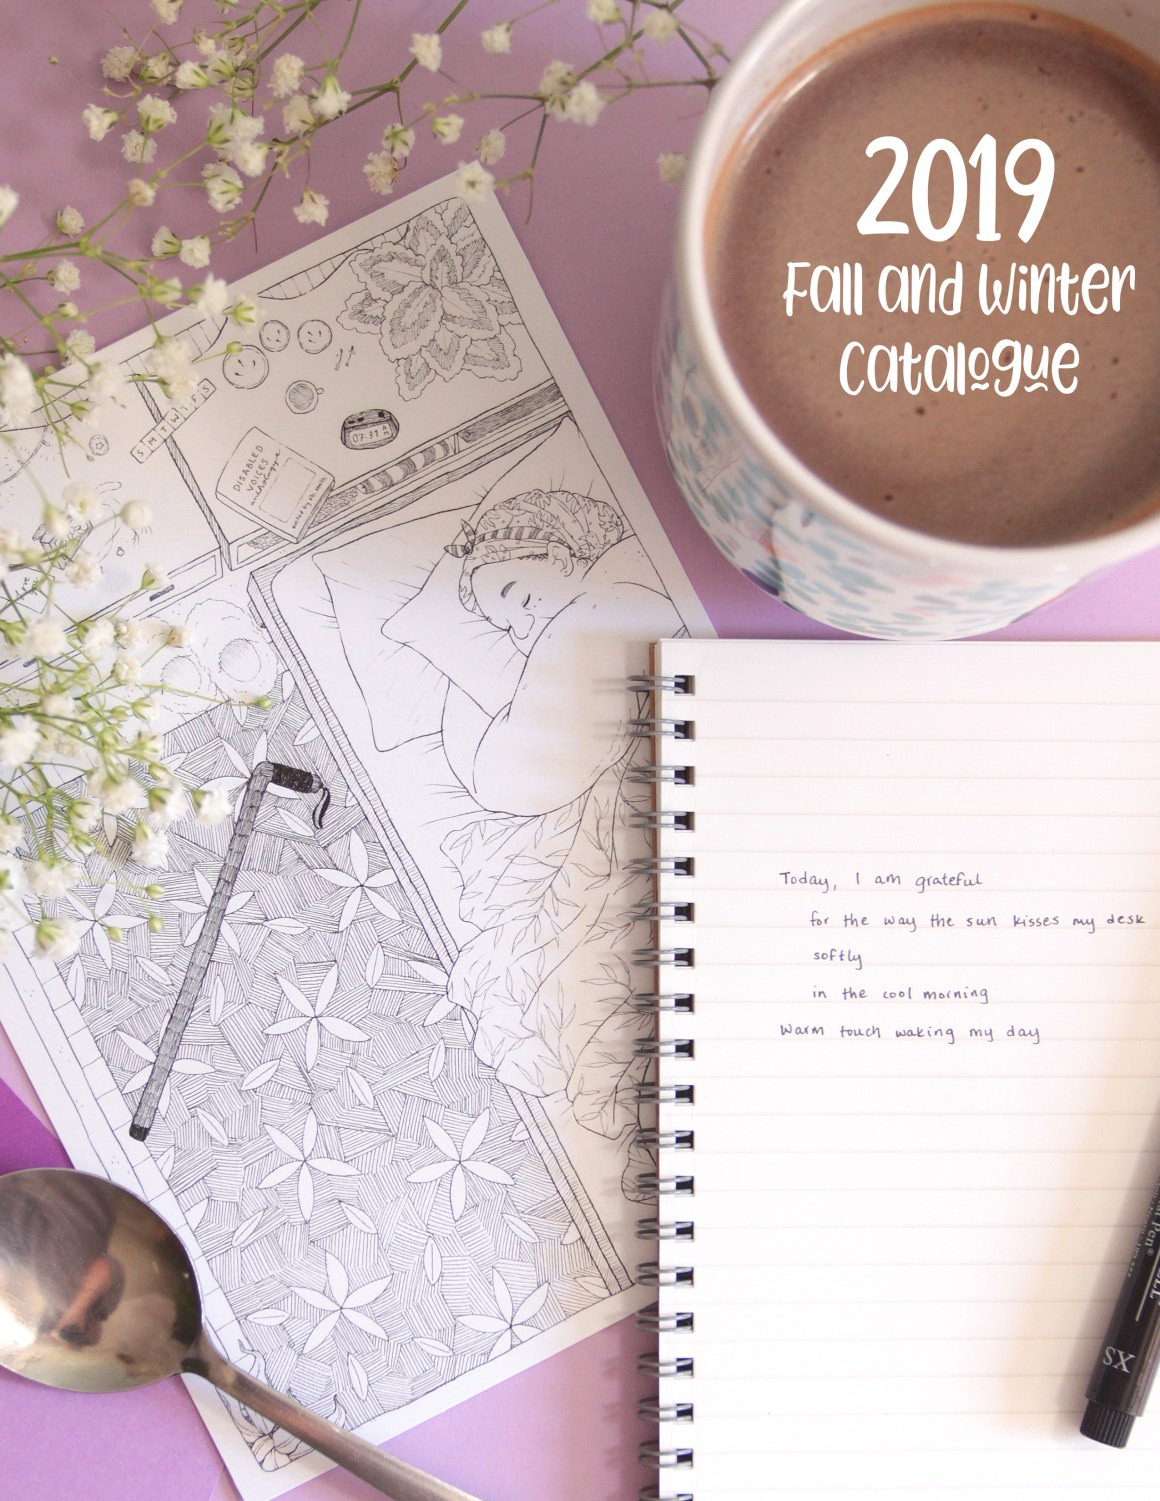 "The cover of the catalogue shows a photo of a purple background showing an open notebook with a short amount of writing on the paper, as well as a black Faber Castell pen on it, a 6 inch by 8 inch print of my piece Beloved, a small pair of purple paper cards, baby's breath flowers, a silver spoon, and a mug of hot chocolate in a pretty, abstract floral/botanical design in greens and pinks. On the spoon, there is a reflection of my hand outstretched to say hi, and on the paper, there is written a short poem: ""Today, I am grateful/ for the way the sun kisses my desk/ softly/ in the cool morning/ warm touch waking my day."""